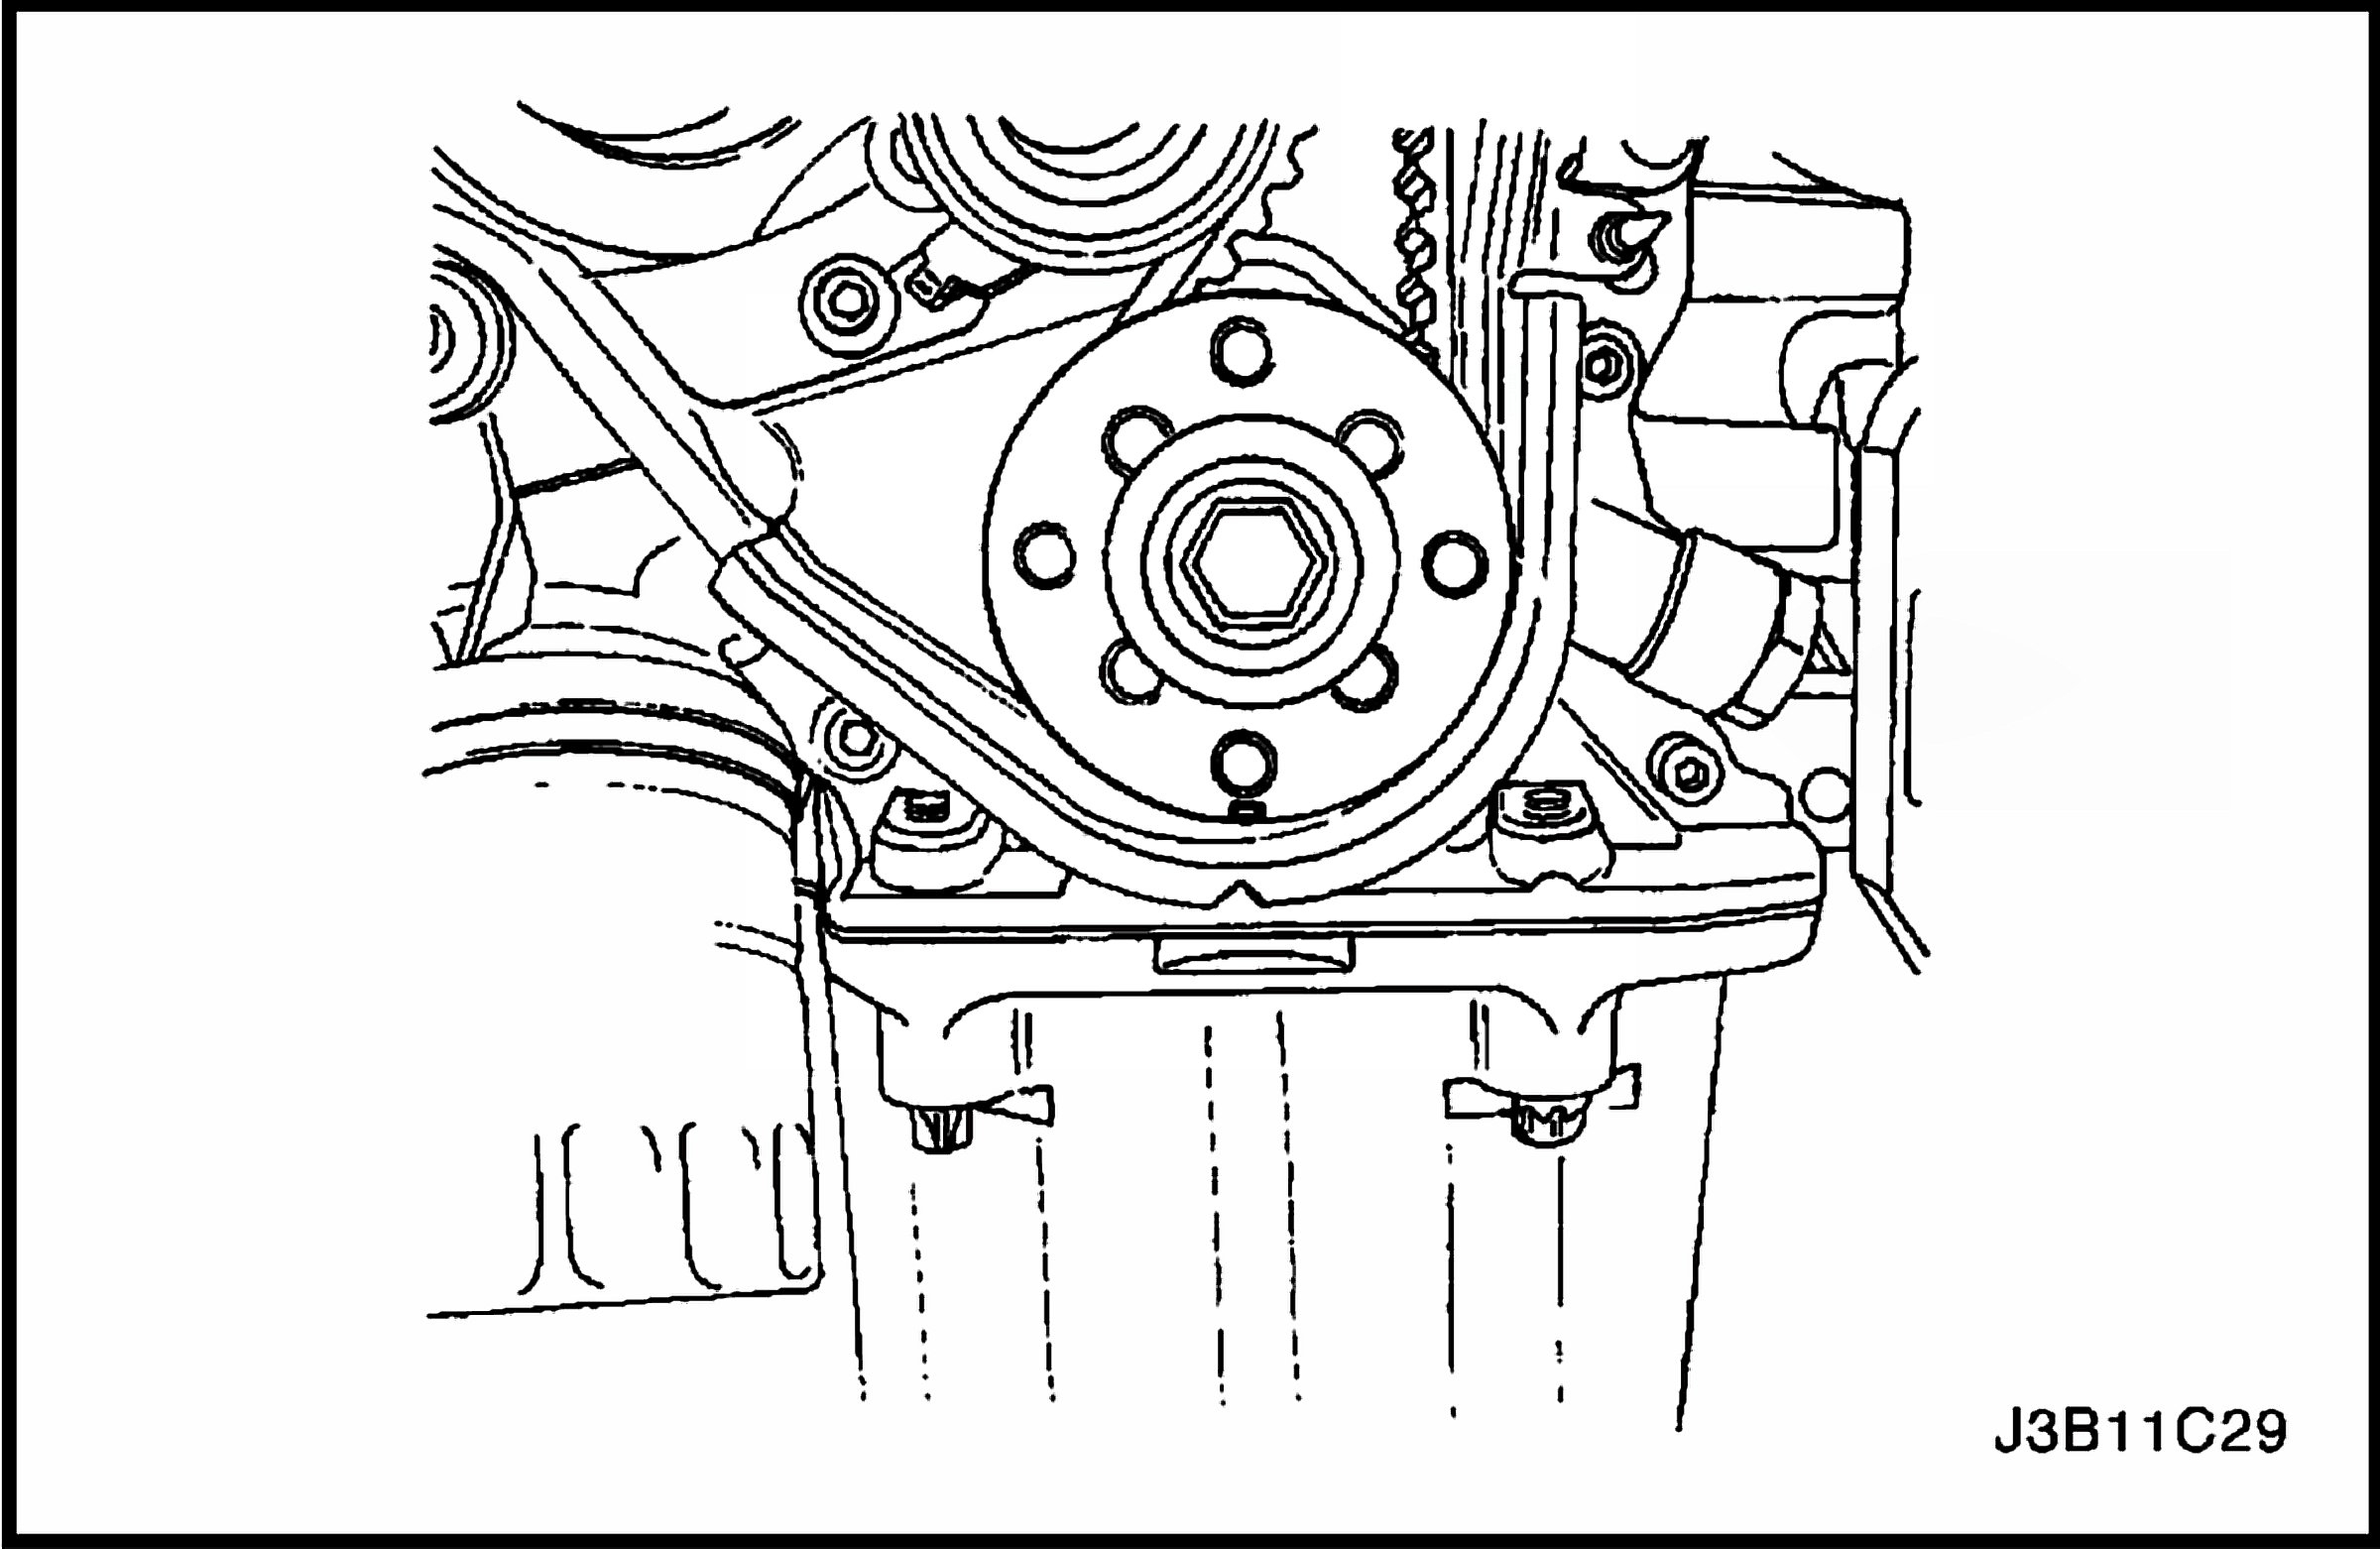 Timing Idler Pulley and Setting Timing: Bought the Car Not